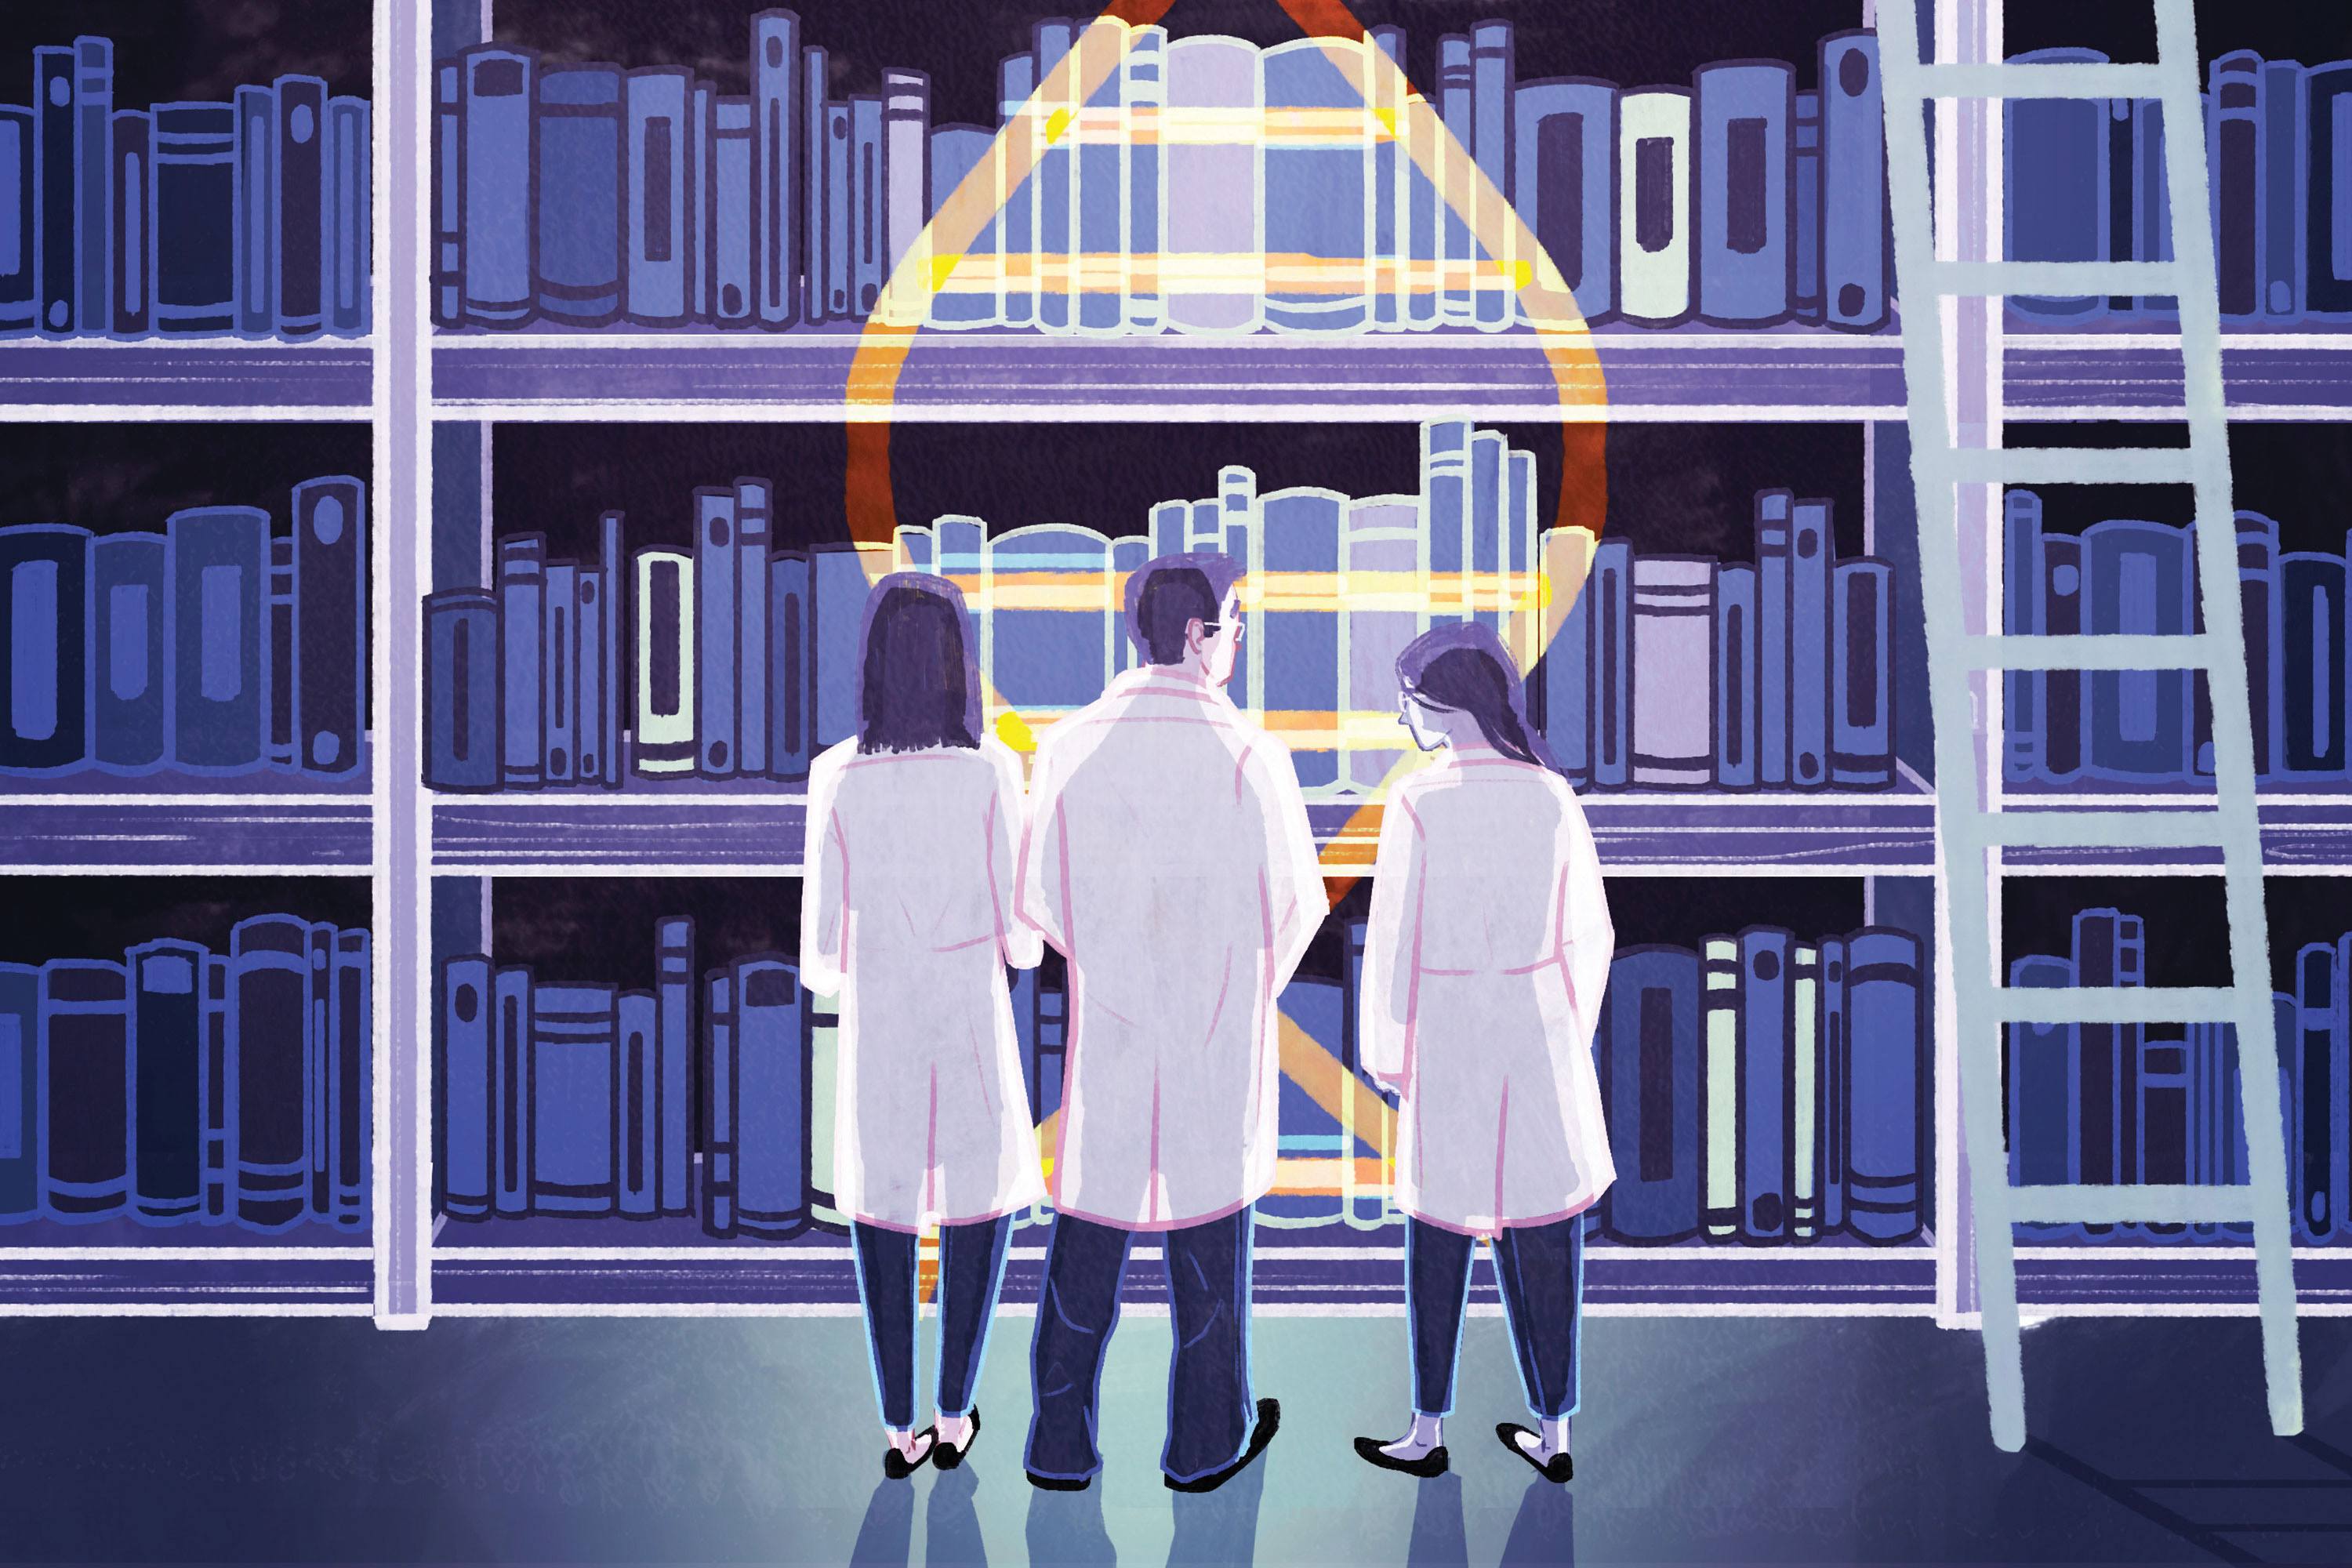 A special team of medical literature experts are on the hunt for cancer's kryptonite, one mutation at a time. (Kailey Whitman Illustration for UConn)